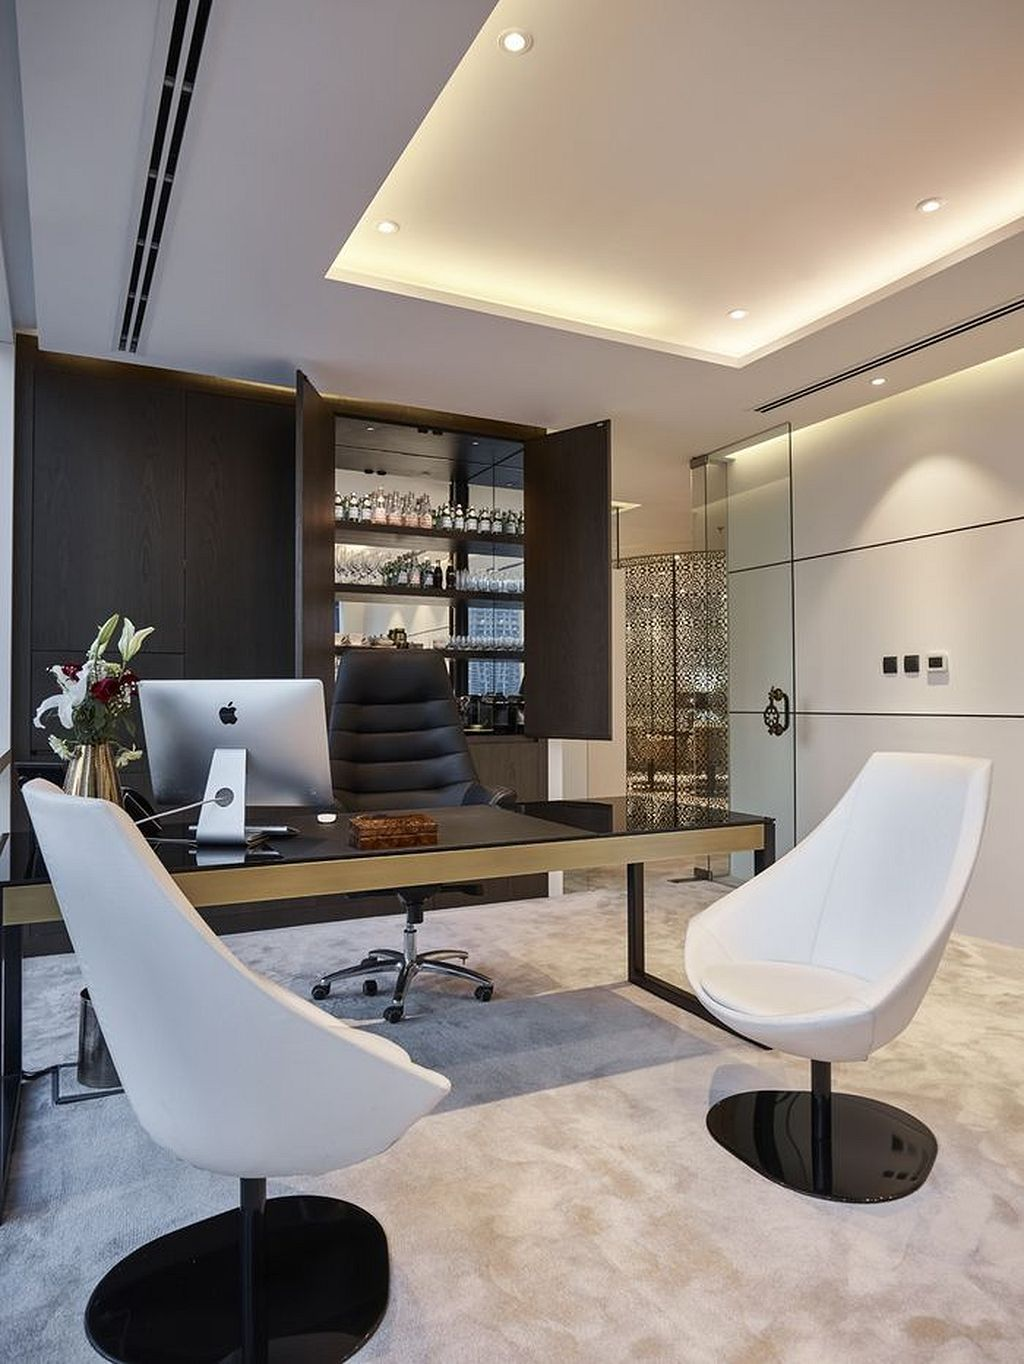 Best 75 Modern Office Interiors Ideas Https Www Mobmasker Com Best 75 Modern Office Interi Modern Office Interiors Small Office Design Private Office Design